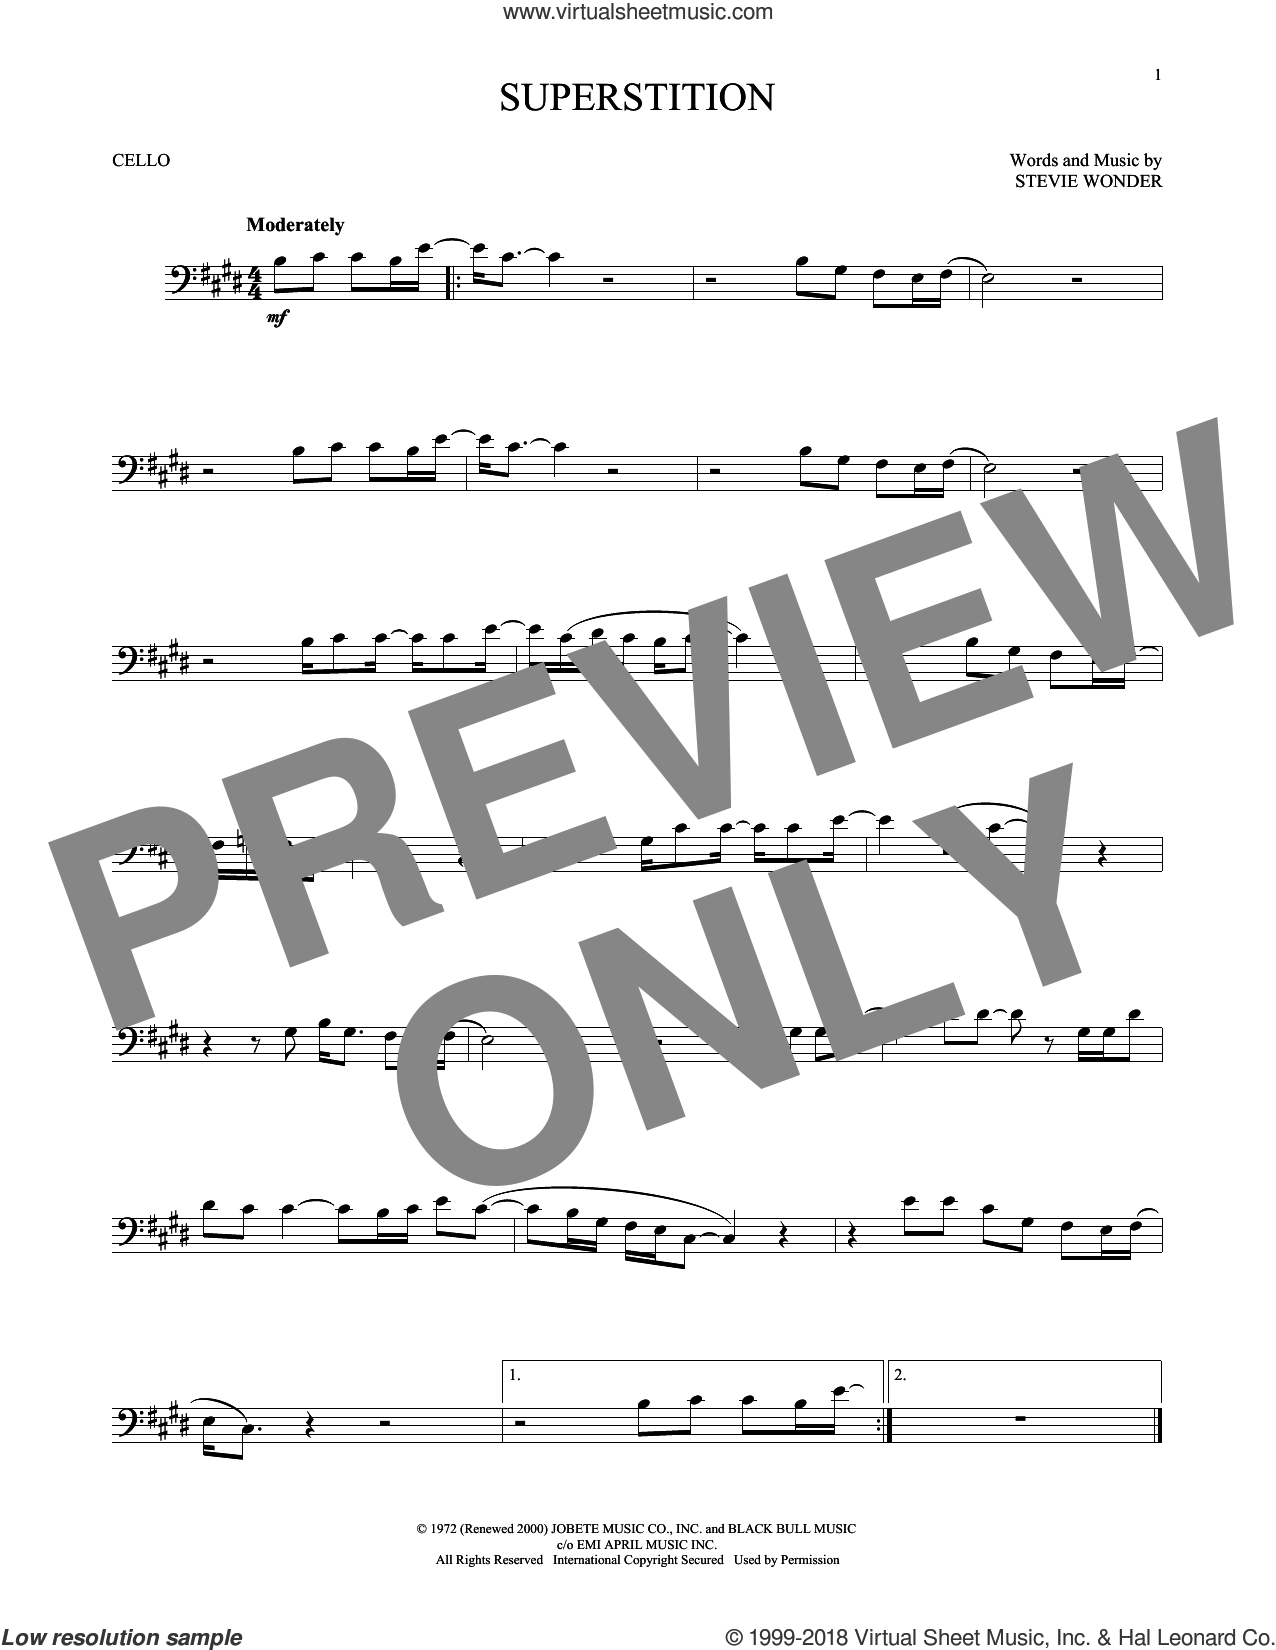 Superstition sheet music for cello solo by Stevie Wonder, intermediate skill level